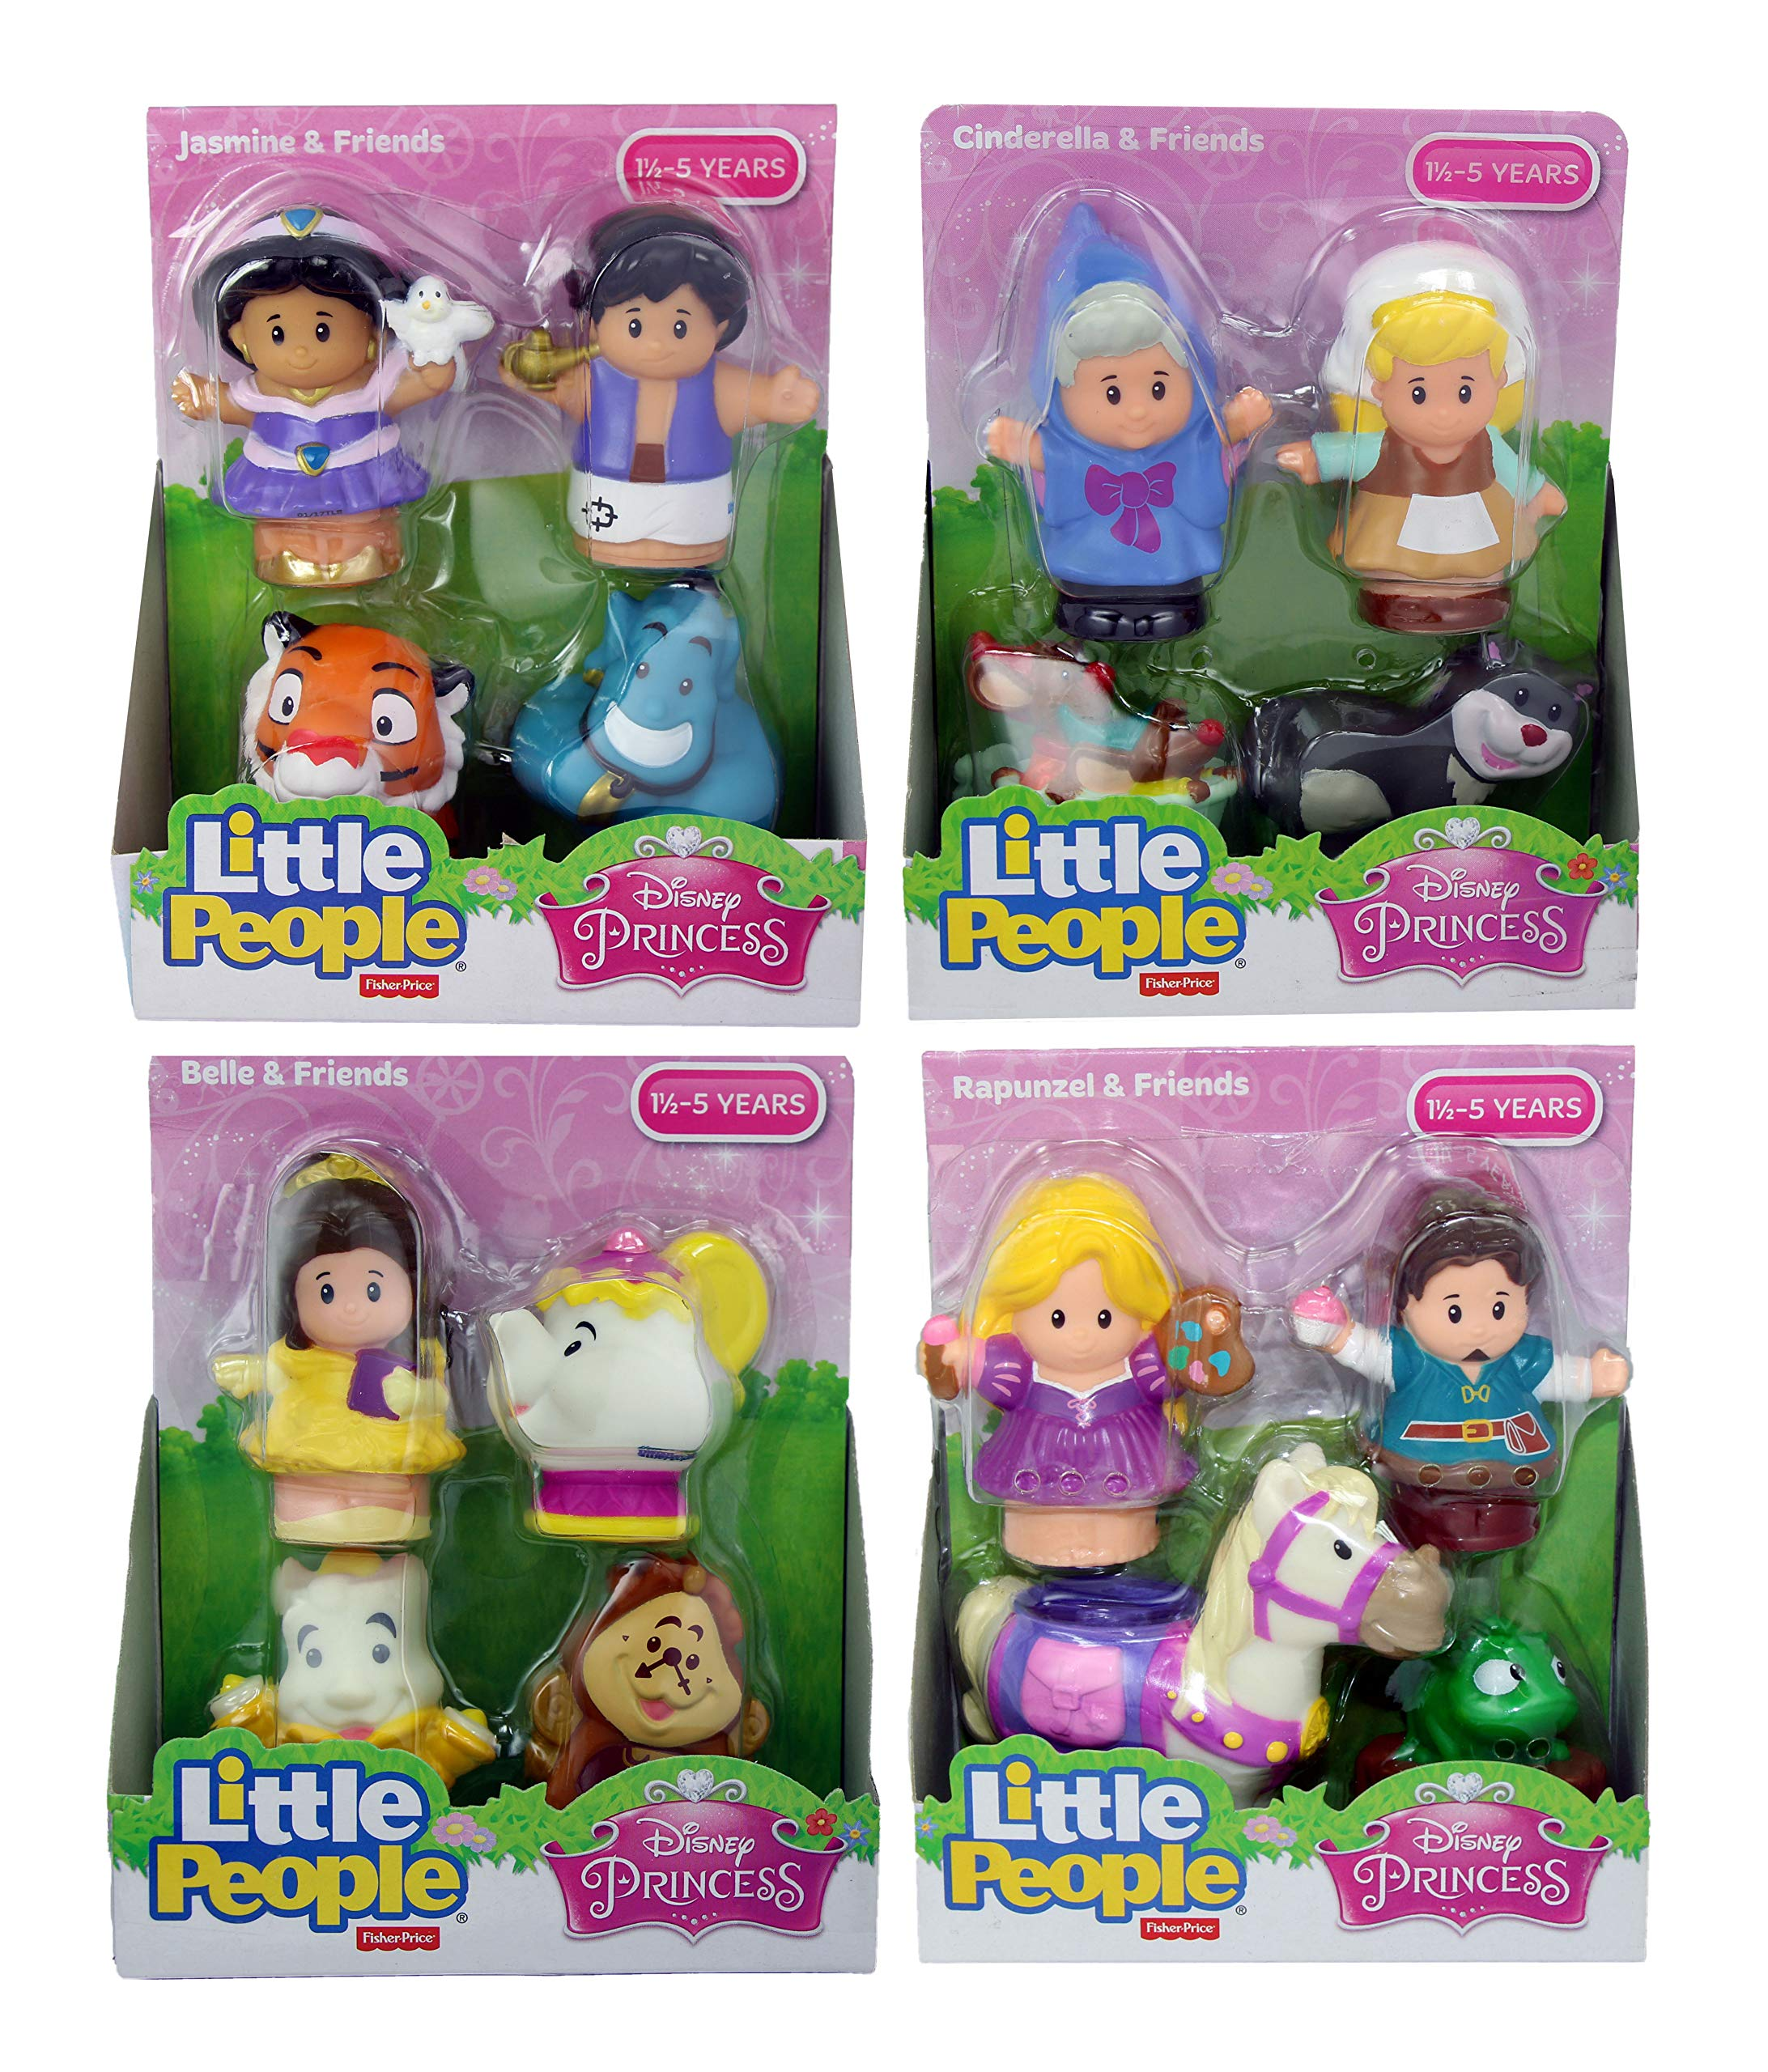 Fisher Price Little People Disney Princess & Friends Figure Set of 4 – Belle, Cinderella, Jasmin & Rapunzel